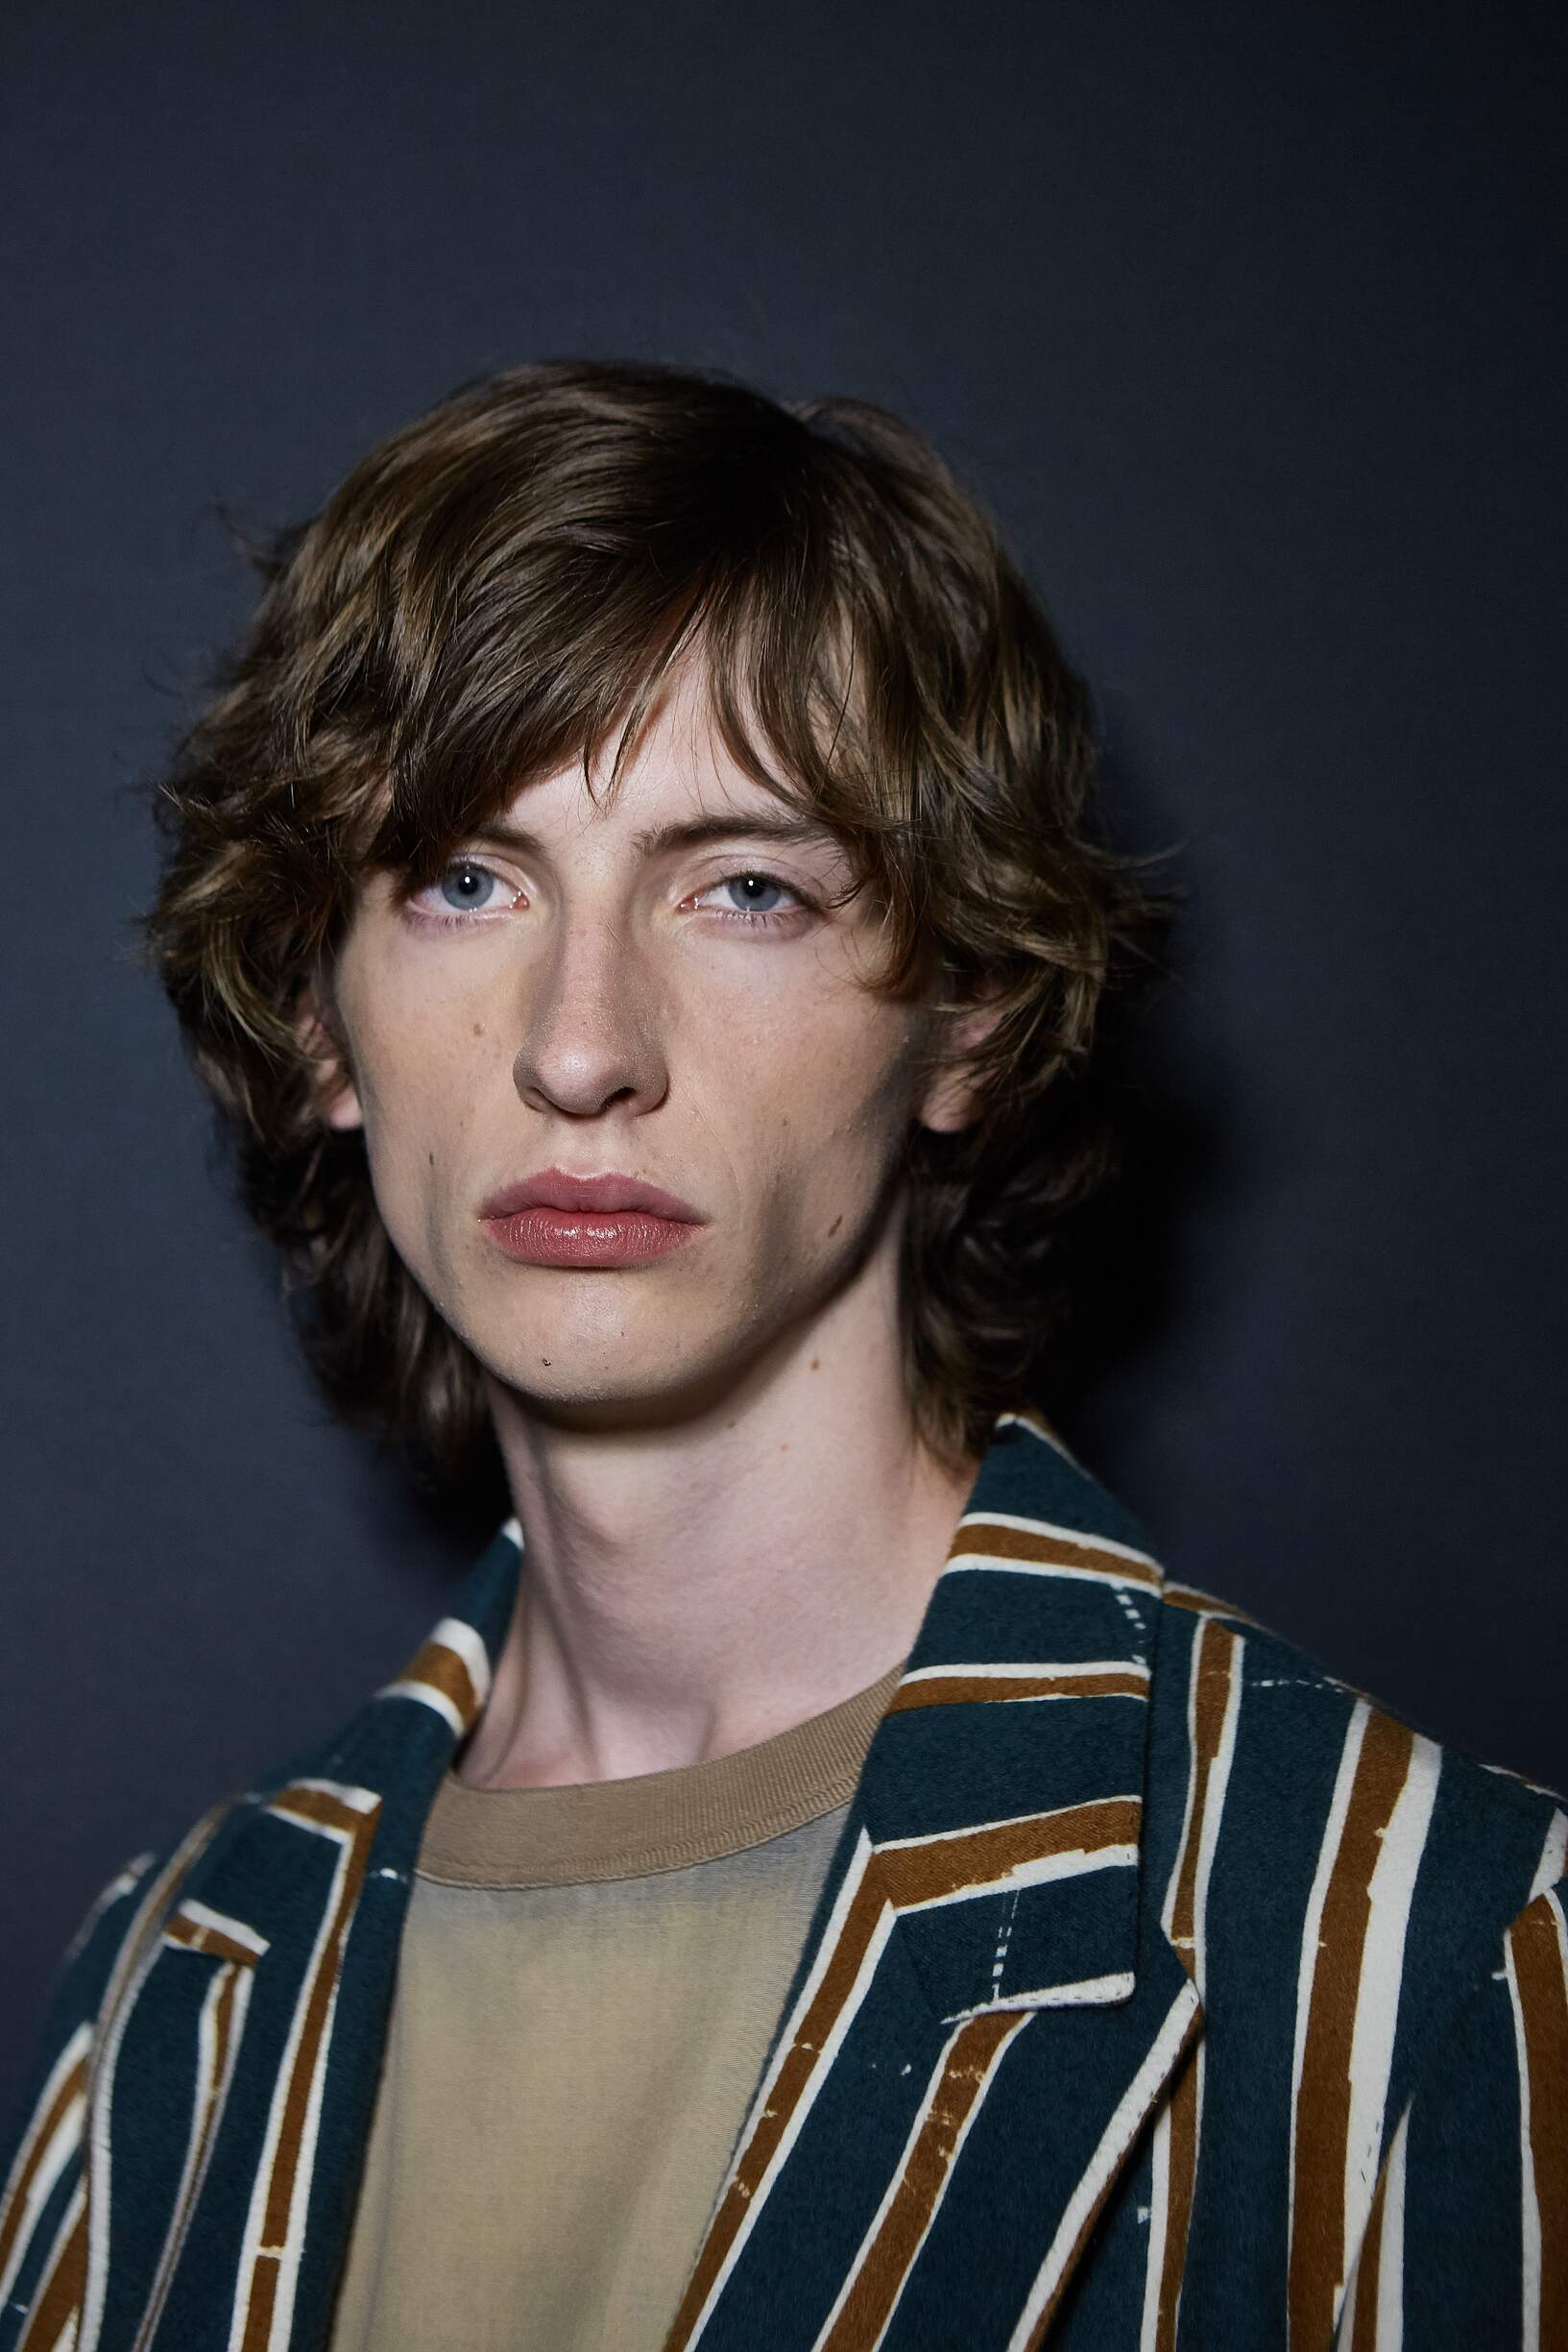 Model Portrait Backstage Ermenegildo Zegna Couture